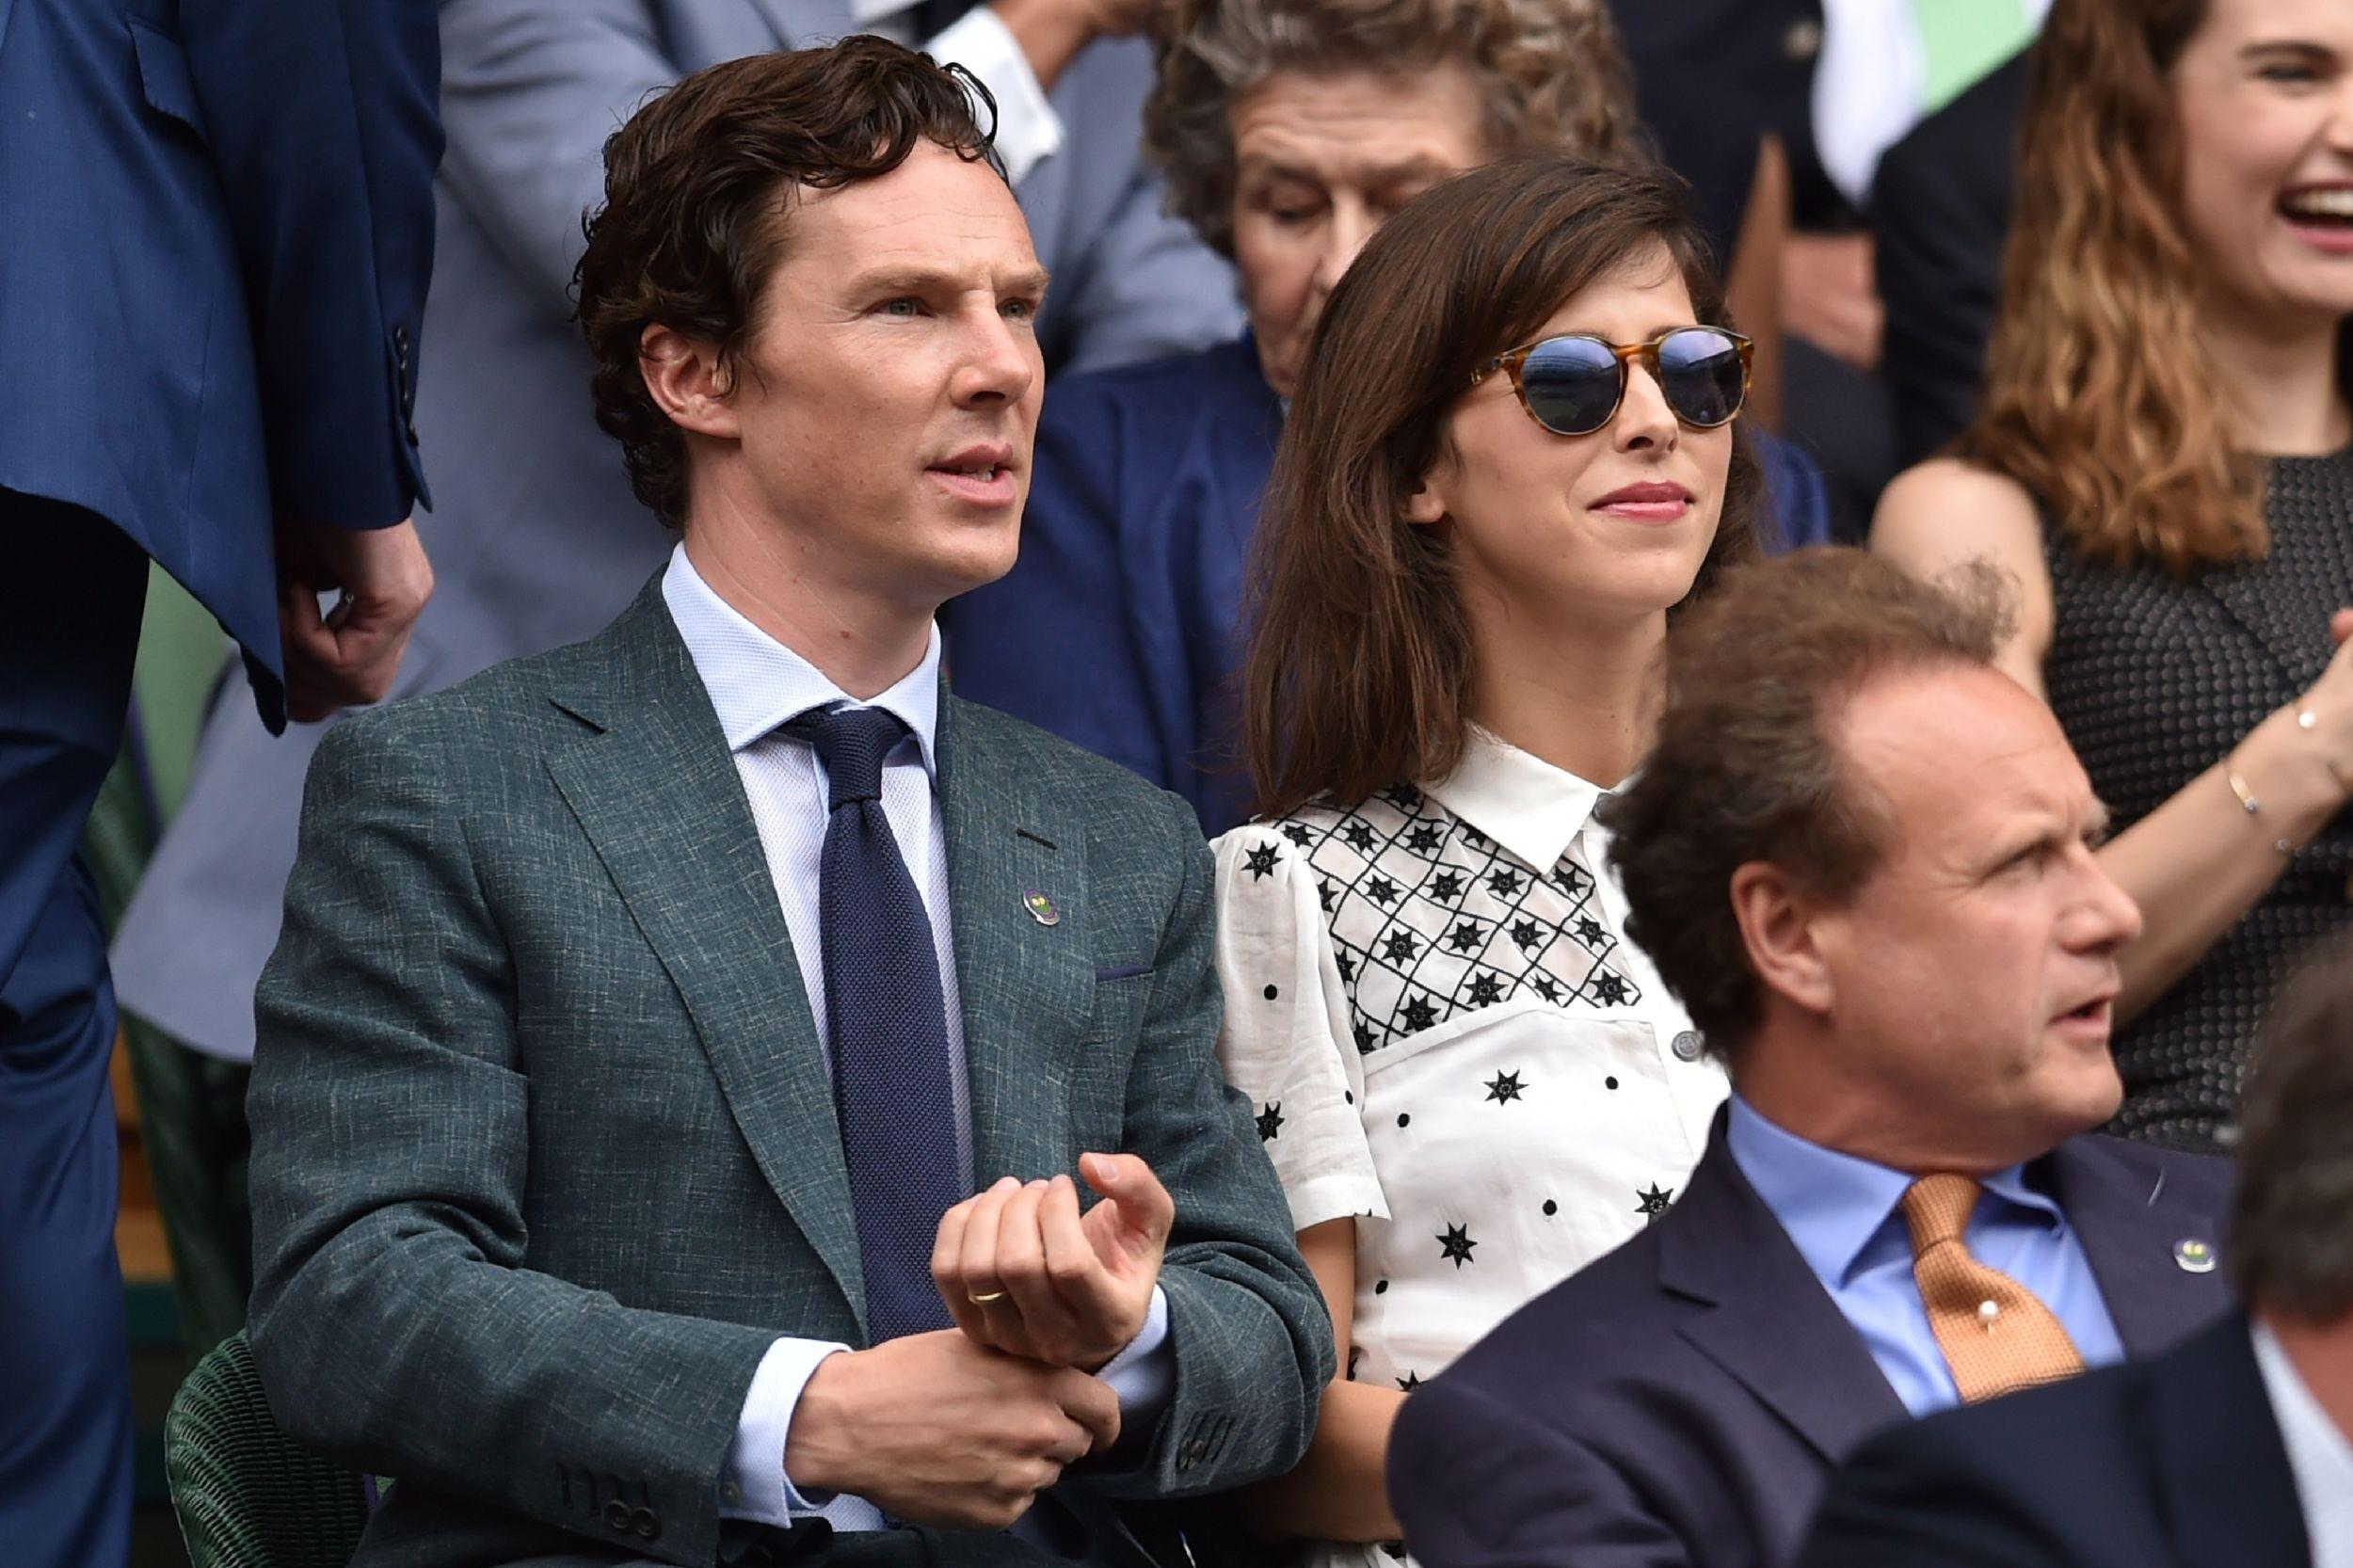 British actor Benedict Cumberbatch sits next to his wife Sophie Hunter.